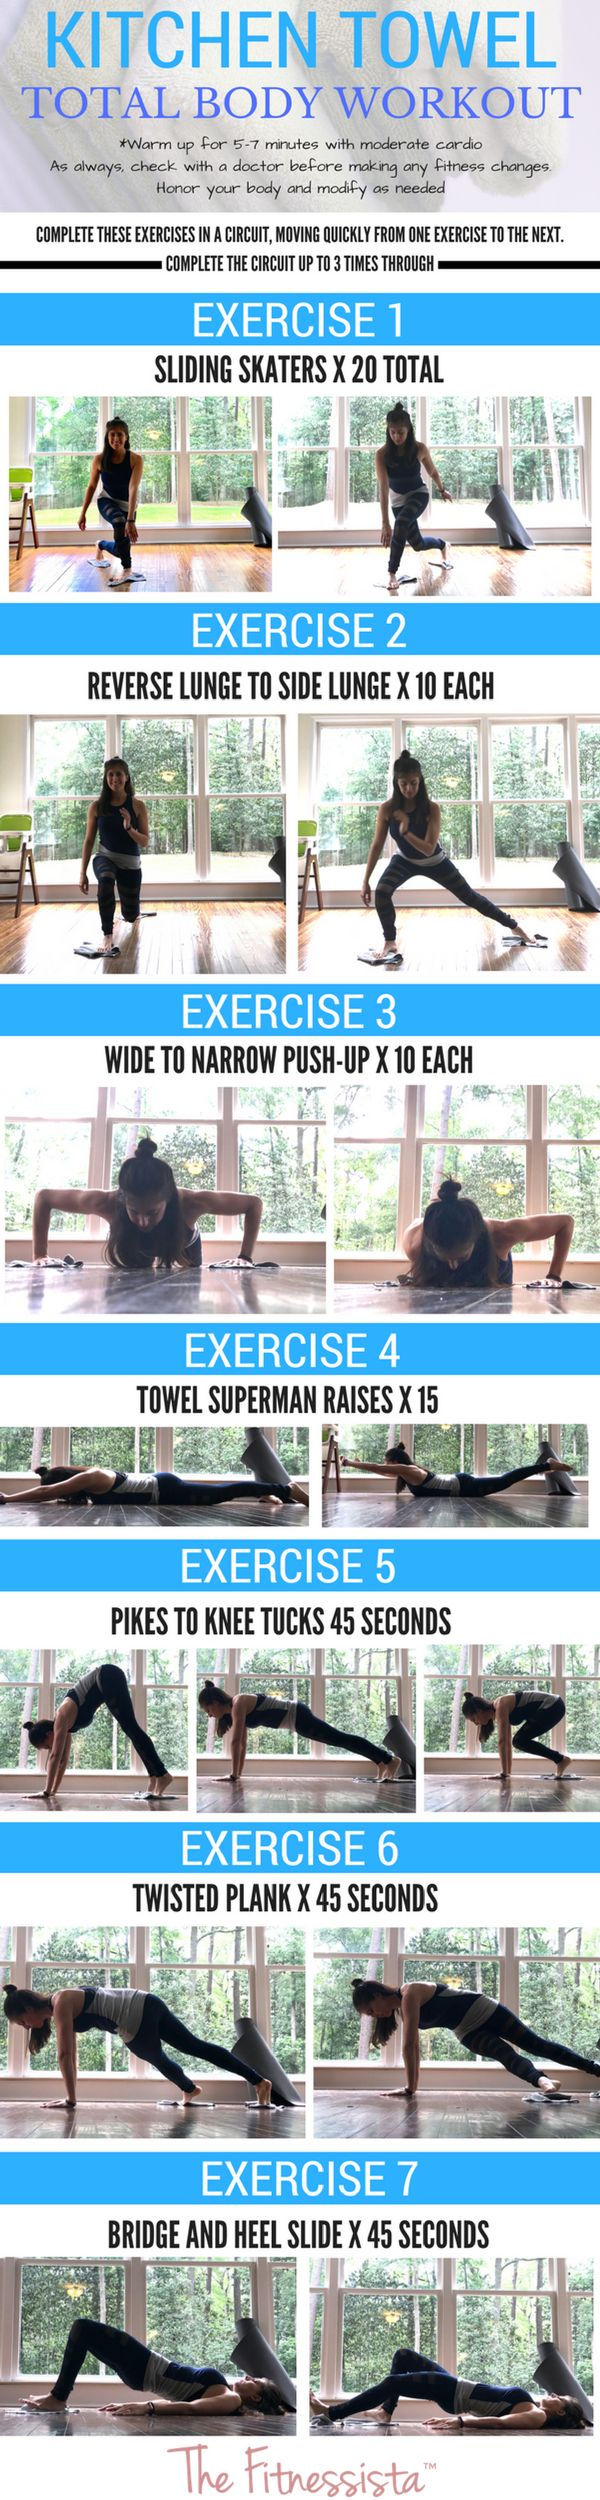 Kitchen towel workout! A perfect rainy day workout, or quiet indoor workout to work your entire body. fitnessista.com